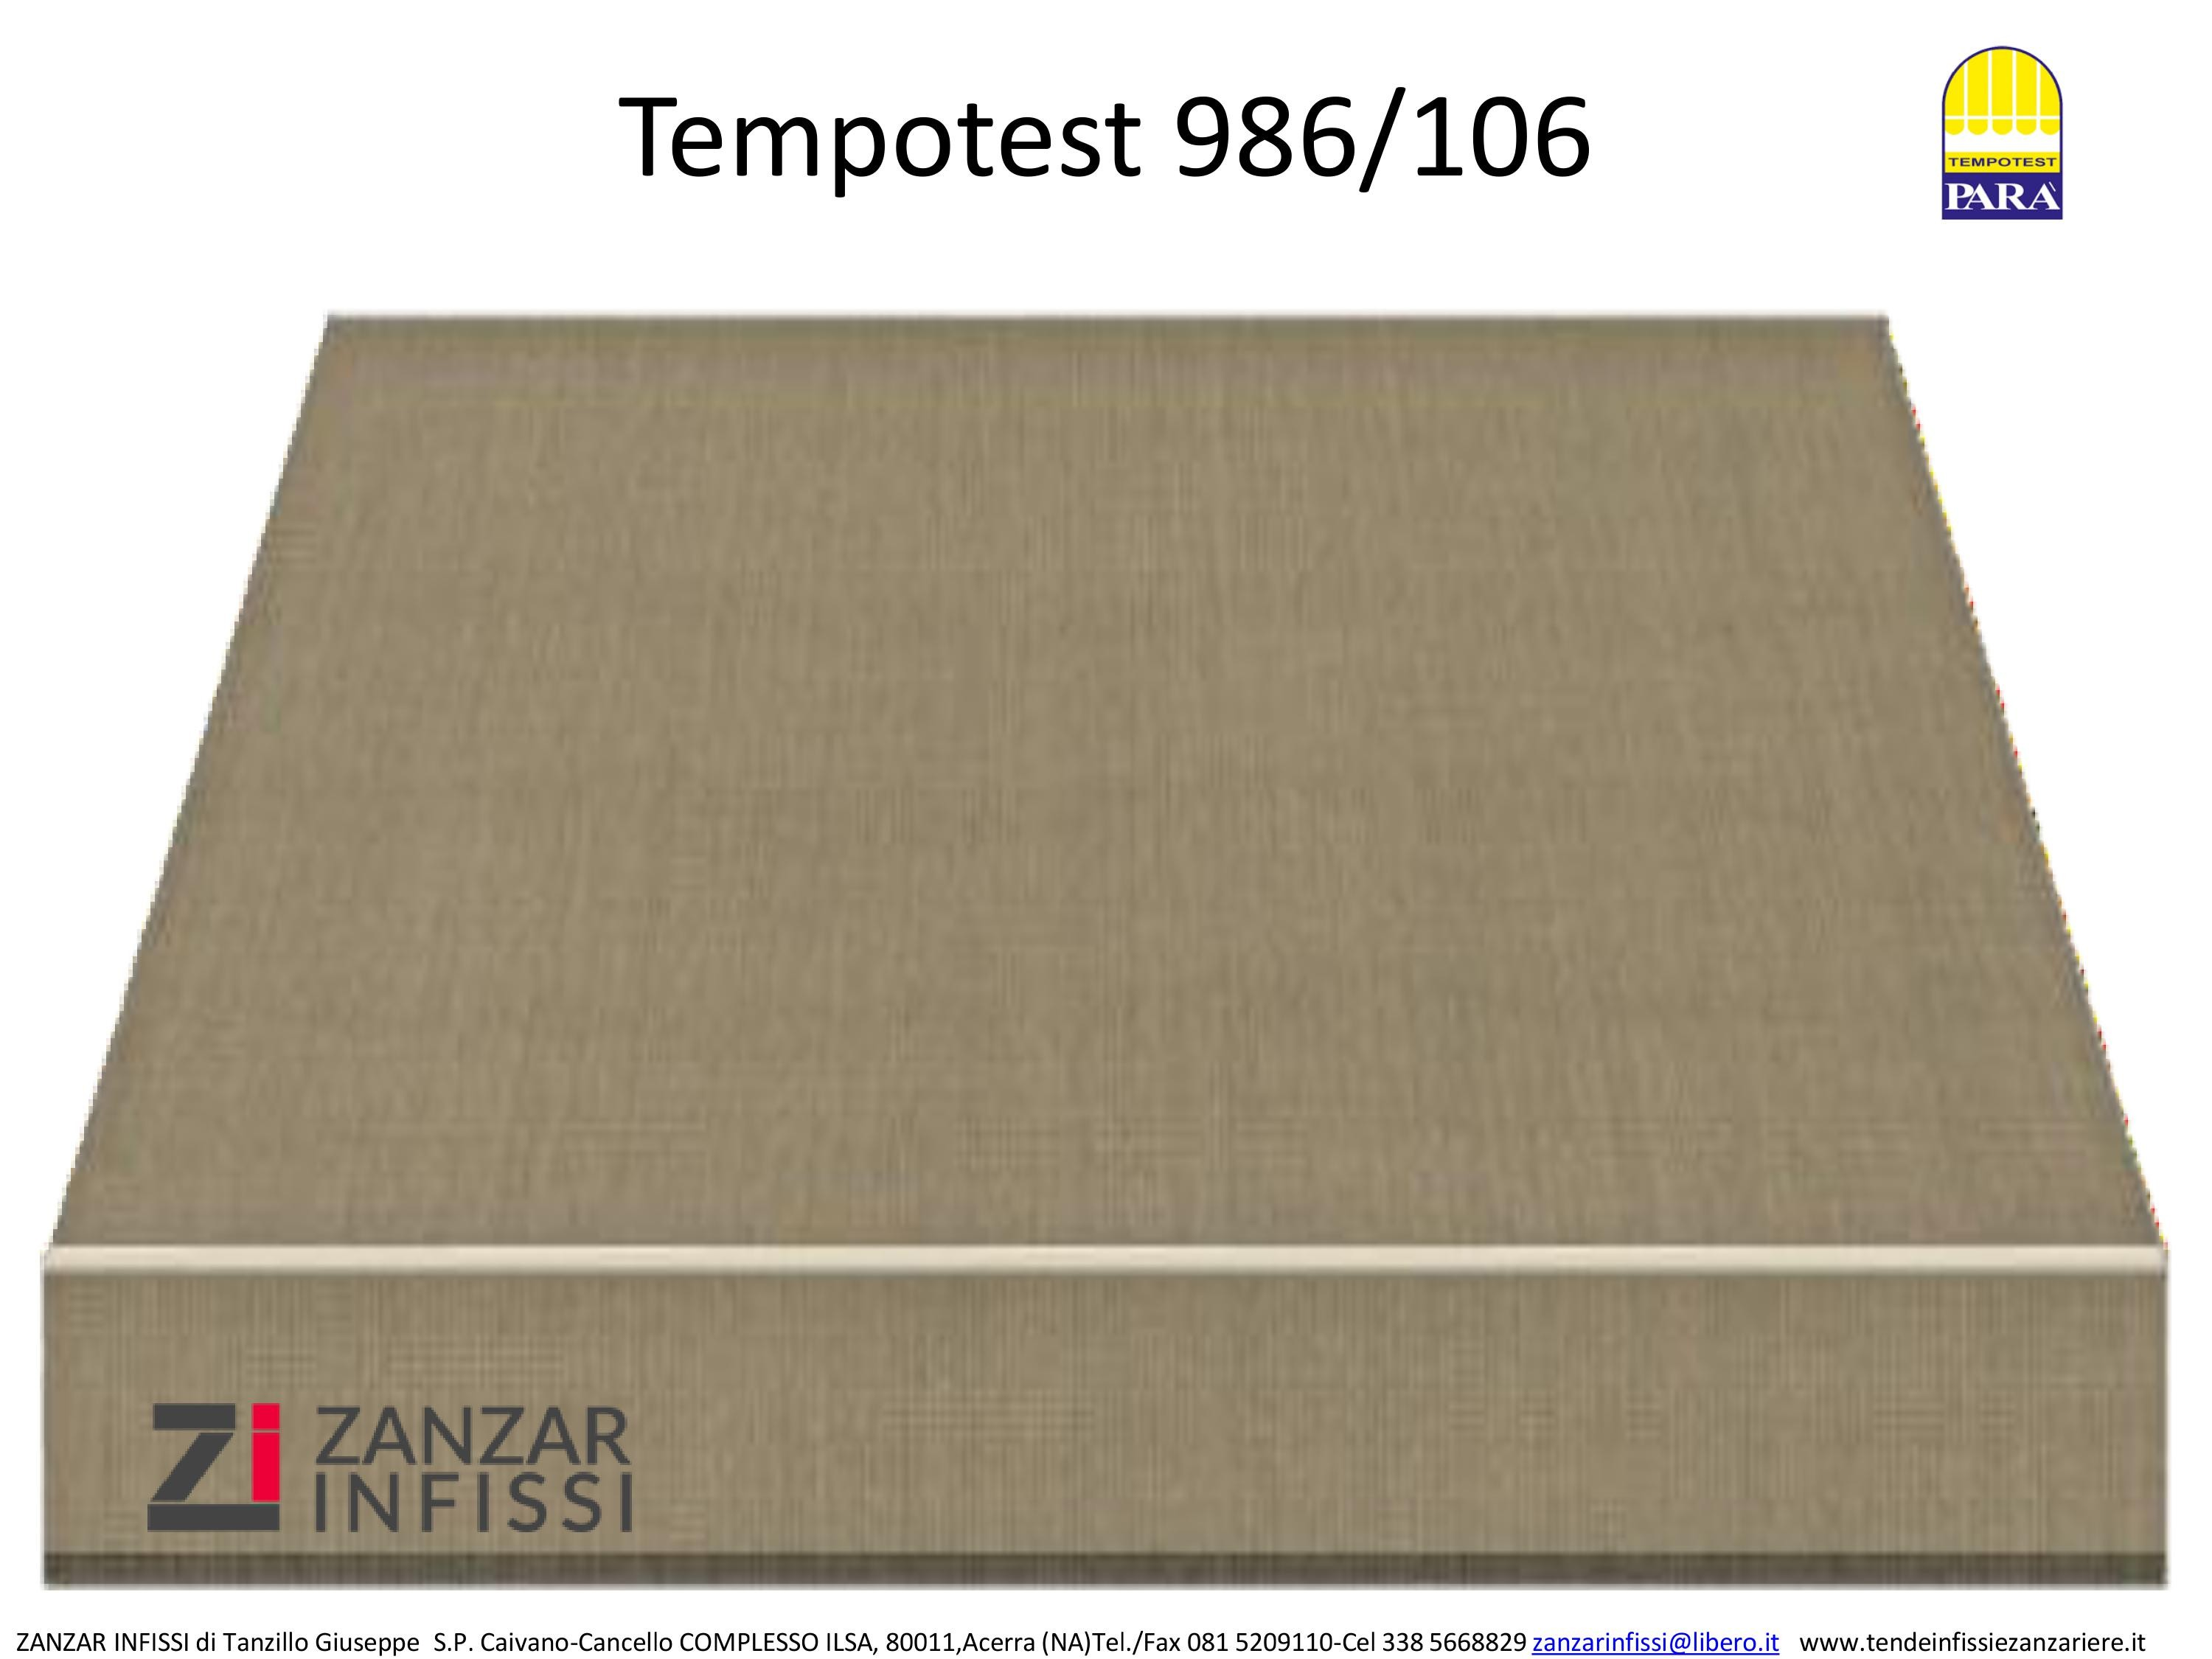 Tempotest 986/106